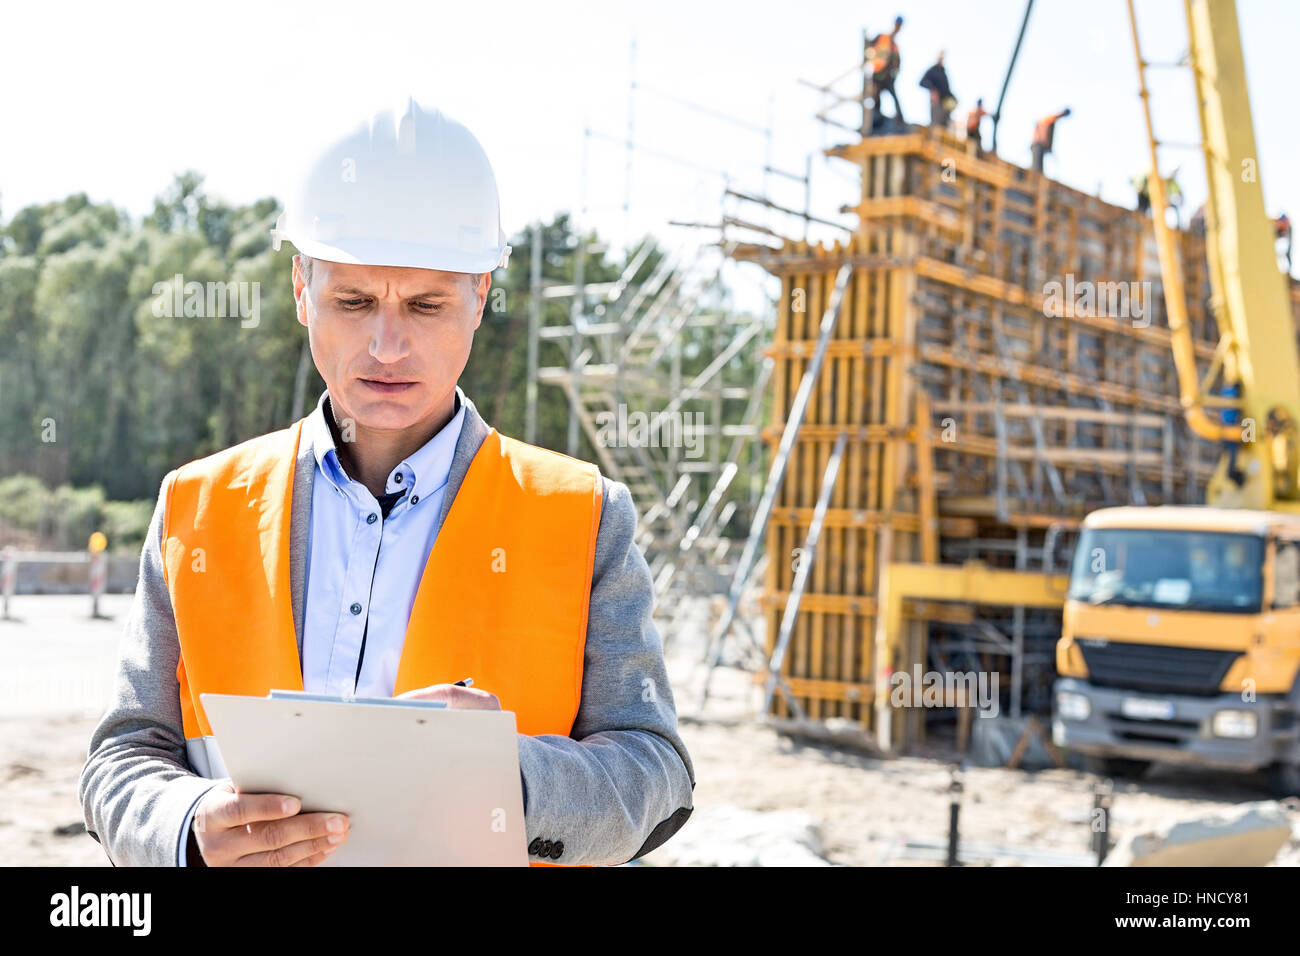 Supervisor writing on clipboard at construction site Banque D'Images